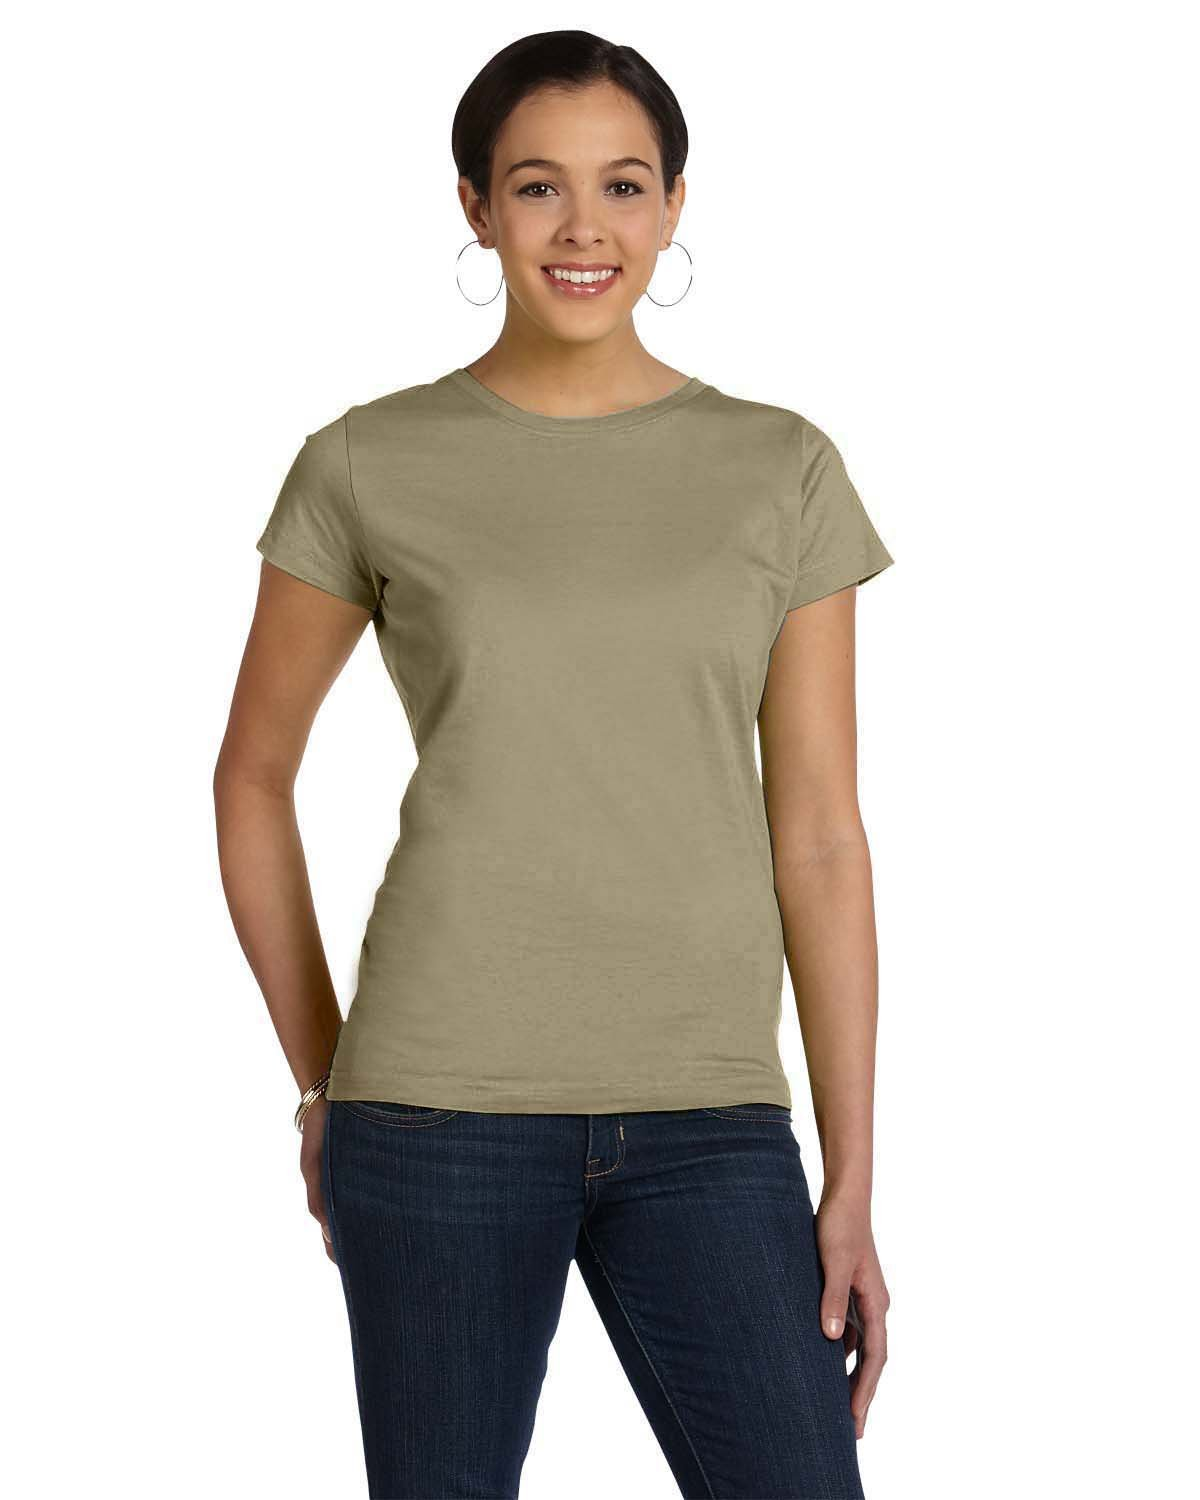 LAT Ladies' Fine Jersey T-Shirt COYOTE BROWN